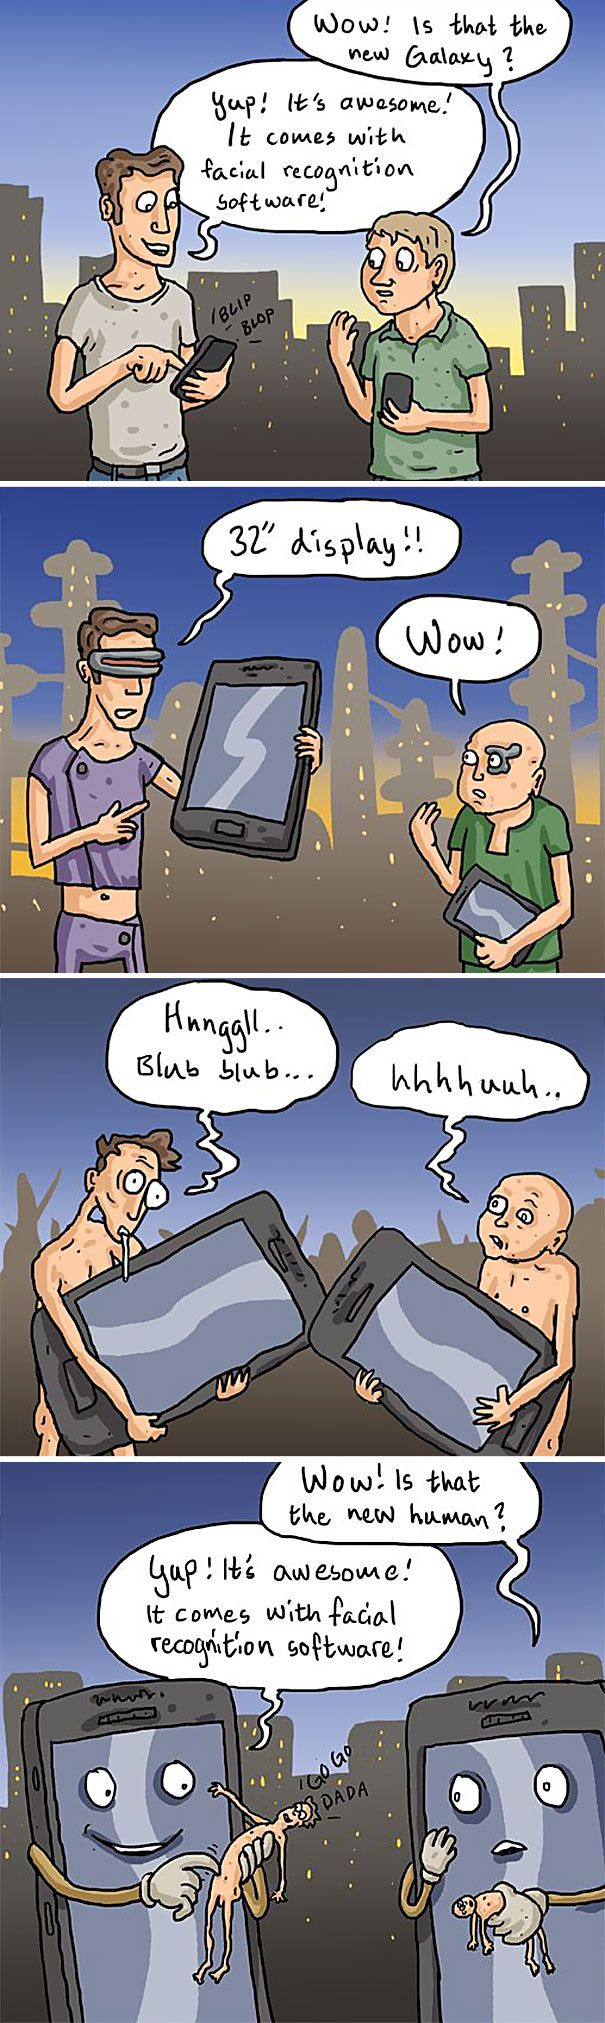 clever_technology_addiction_12